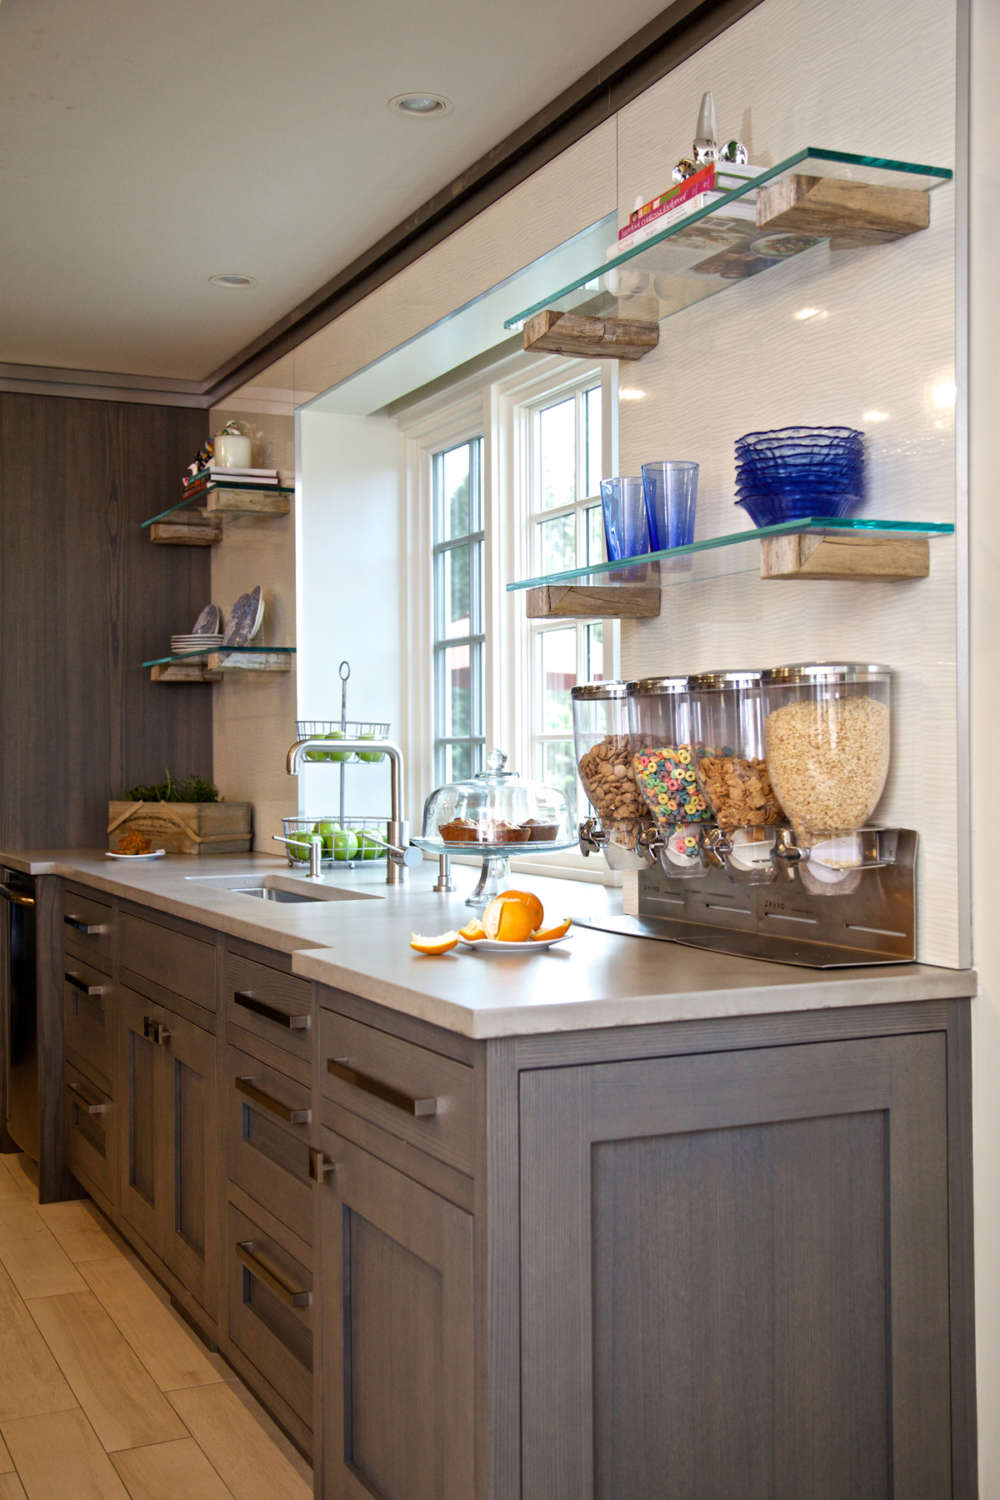 Family-friendly kitchen features porcelain plank style tile flooring, light quartz countertops, shaker style rift white ash stained jully custom cabinets by Bilotta and open glass shelving. Design by Jeff Eakley of Bilotta Kitchens.